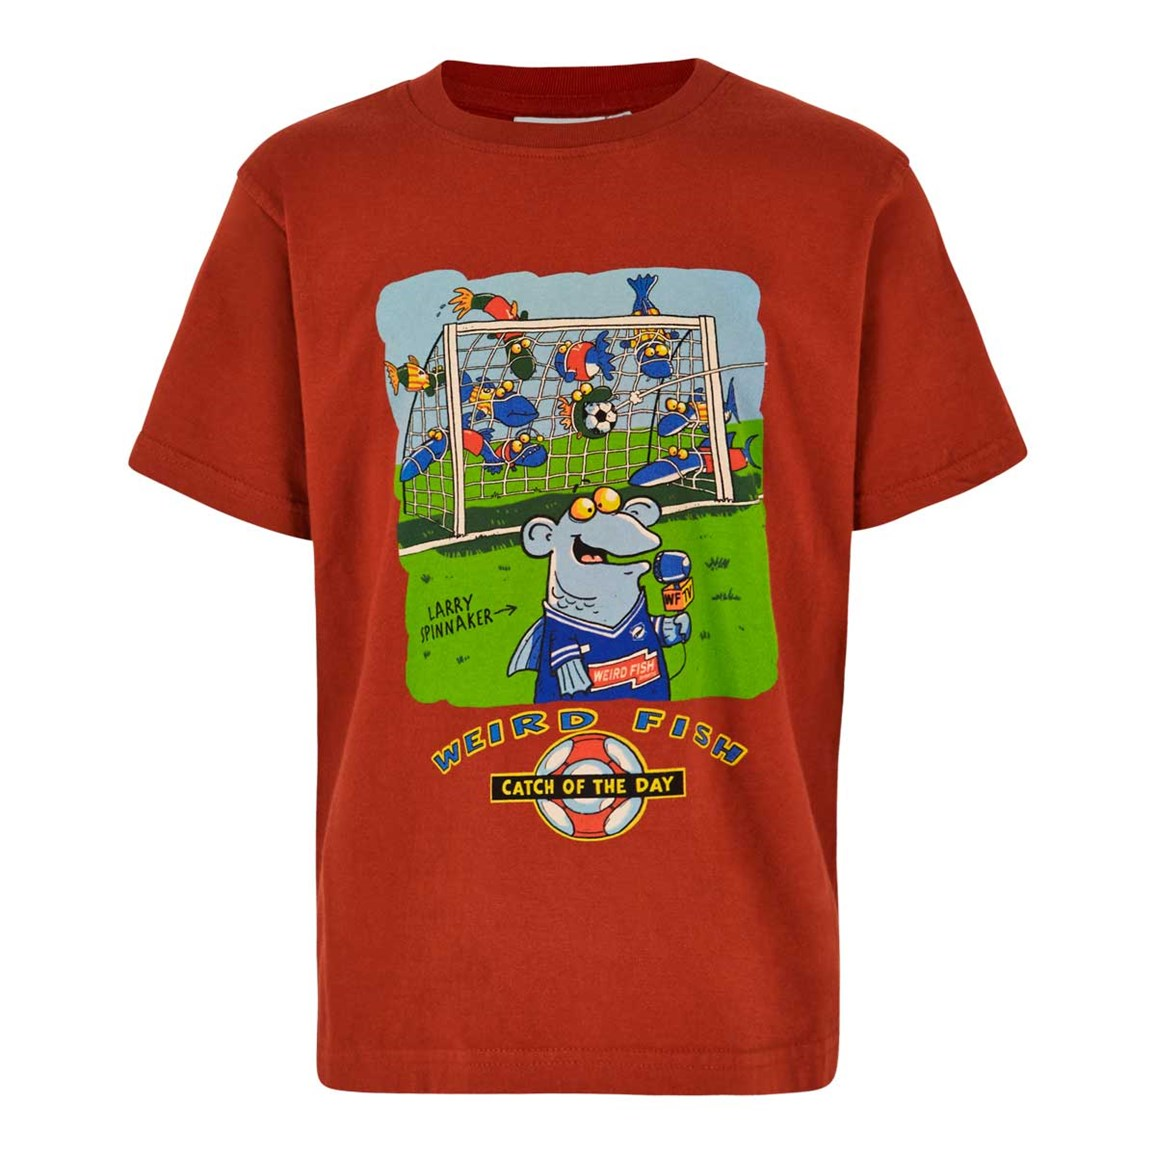 Image of Weird Fish Catch Of The Day Boy's Artist T-Shirt Ketchup Red Size 7-8